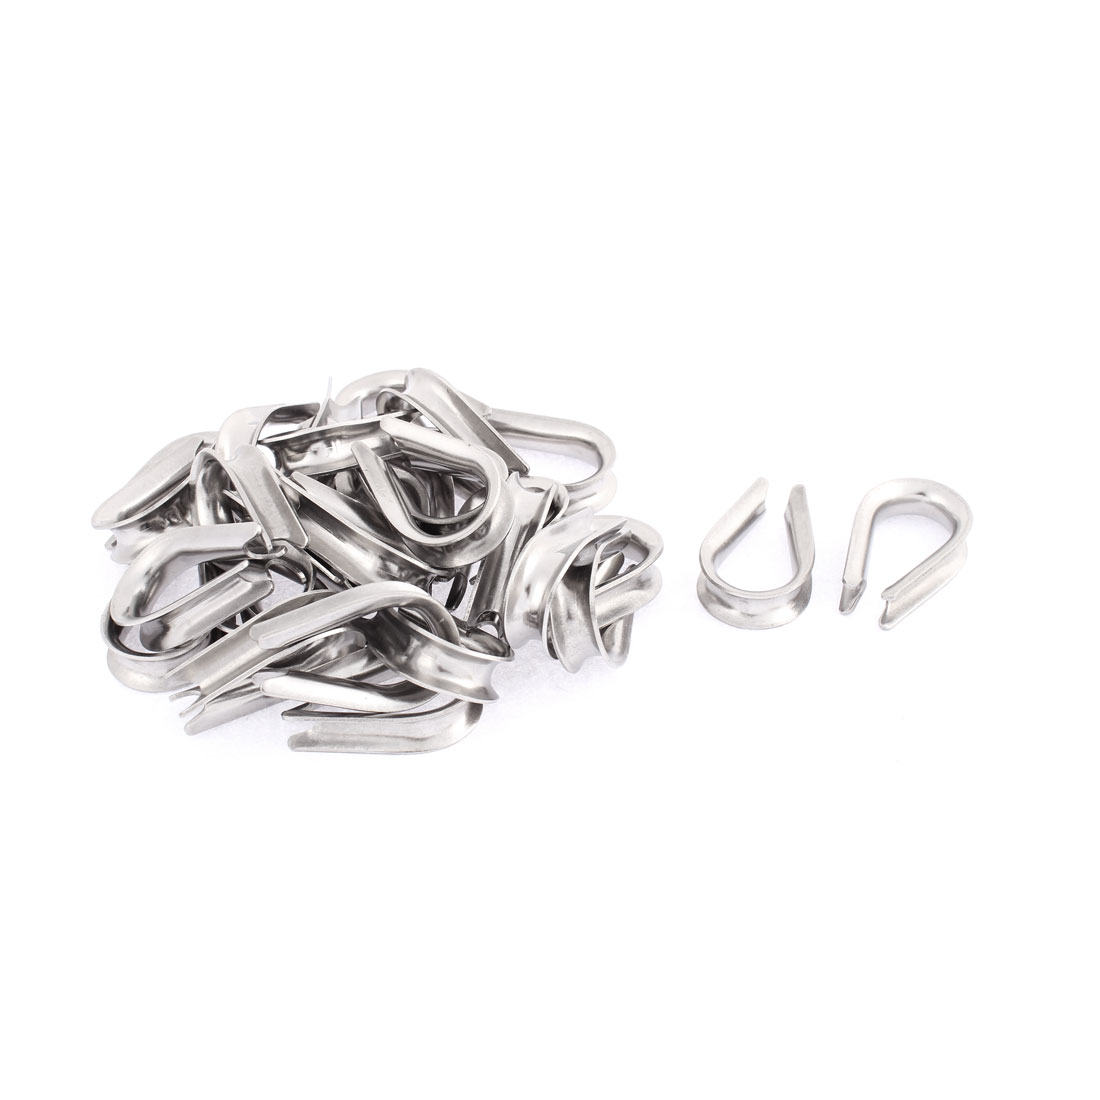 Stainless Steel 8mm Standard Wire Rope Cable Thimbles Rigging 30pcs